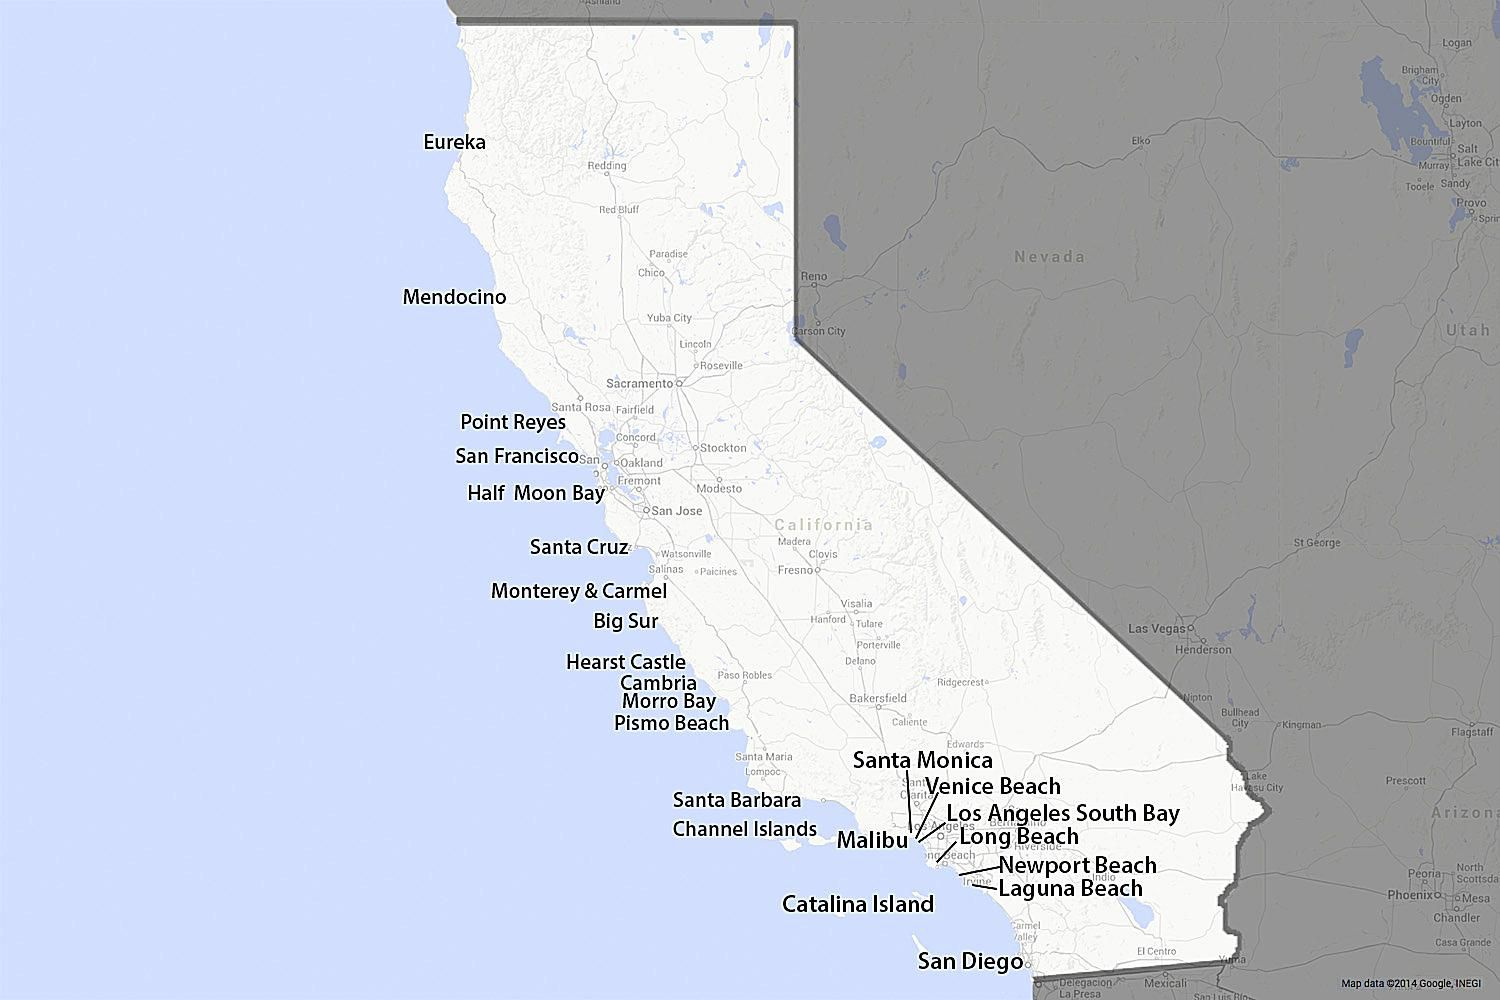 Maps Of California Created For Visitors And Travelers - Map of califirnia